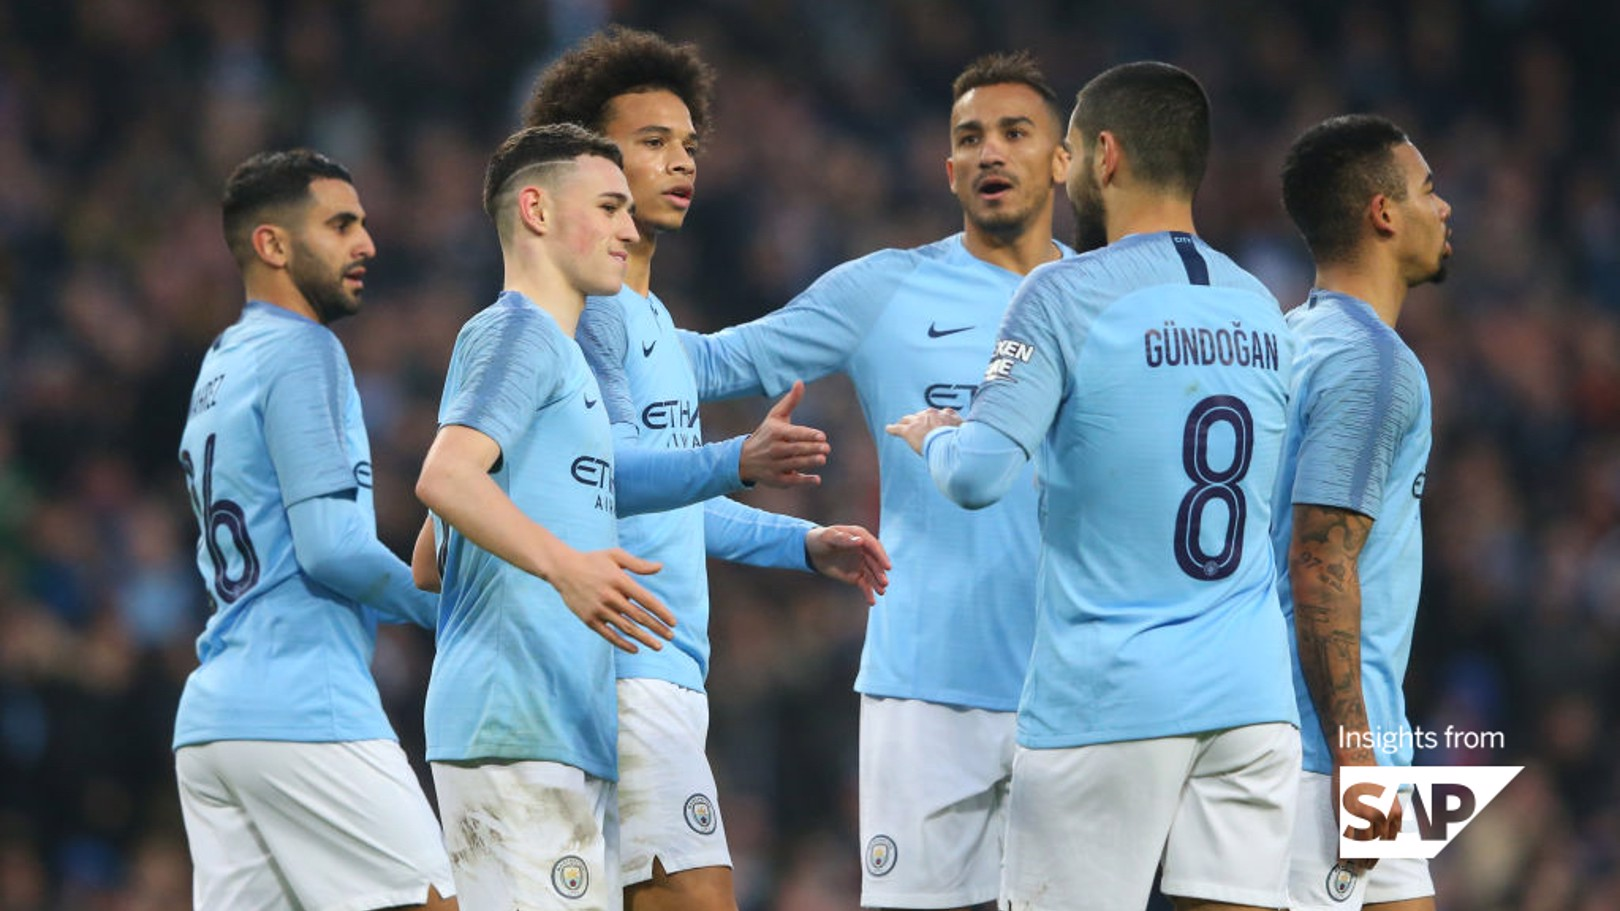 FA CUP JOURNEY: City beat Rotherham in the 3rd round